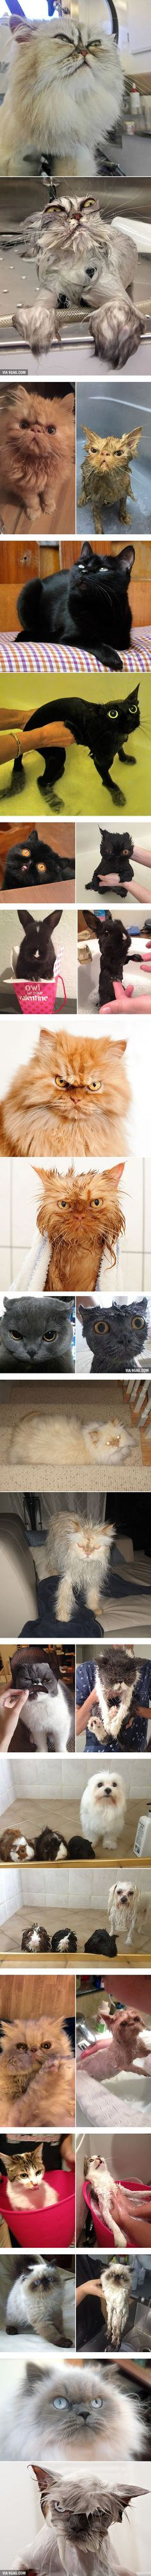 Before And After Bath - 9GAG